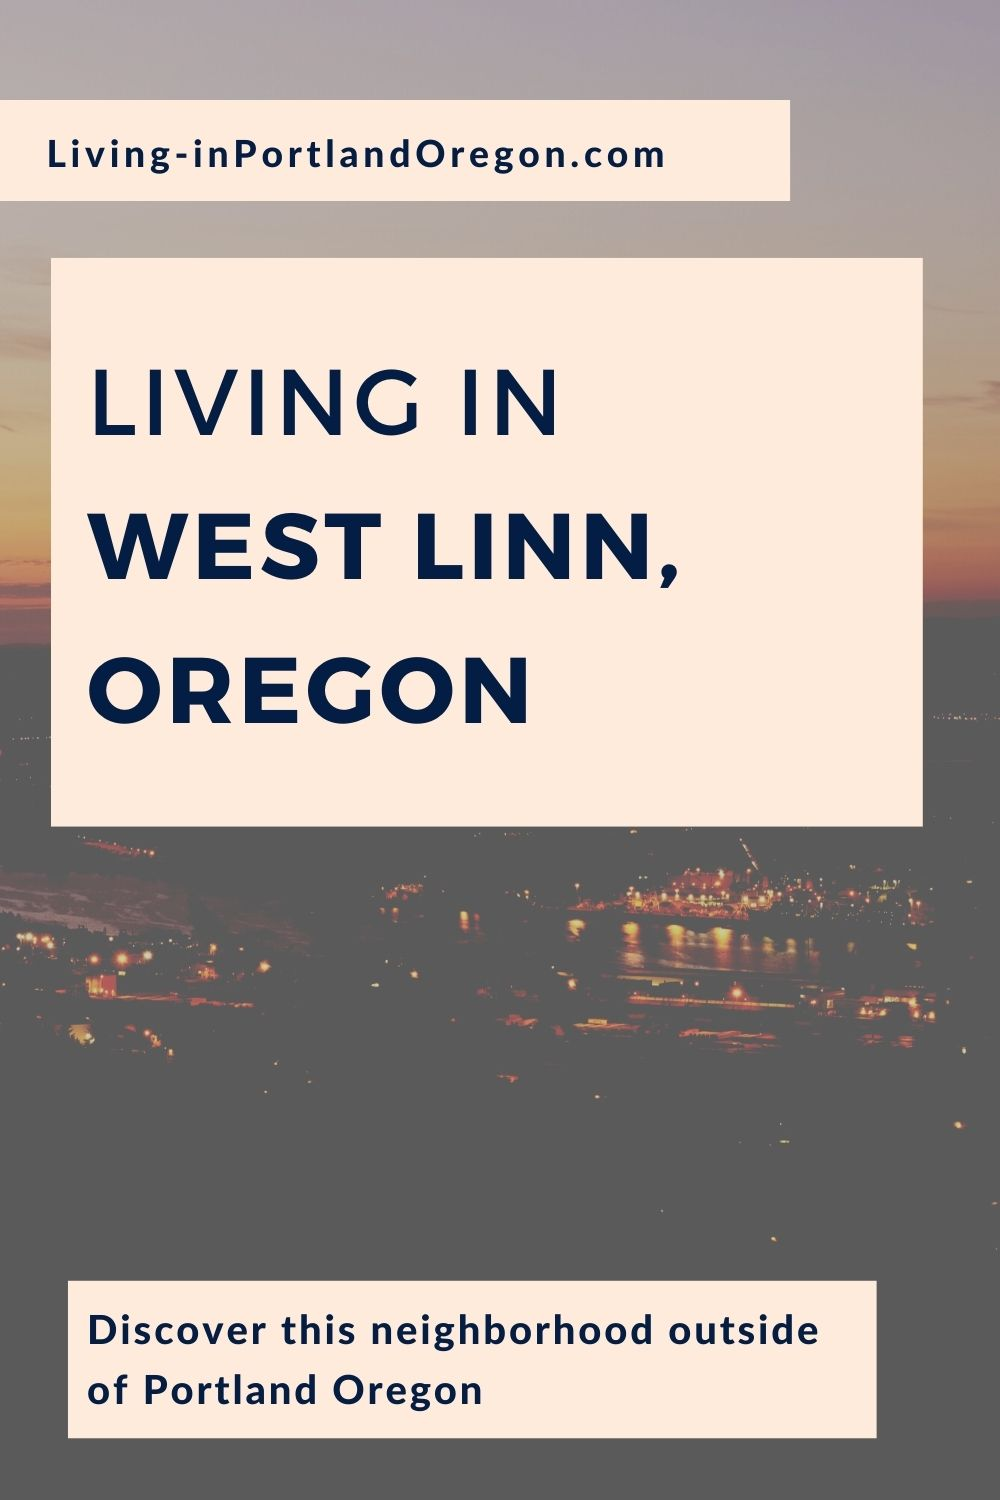 West Linn Oregon, Living in Portland Oregon real estate